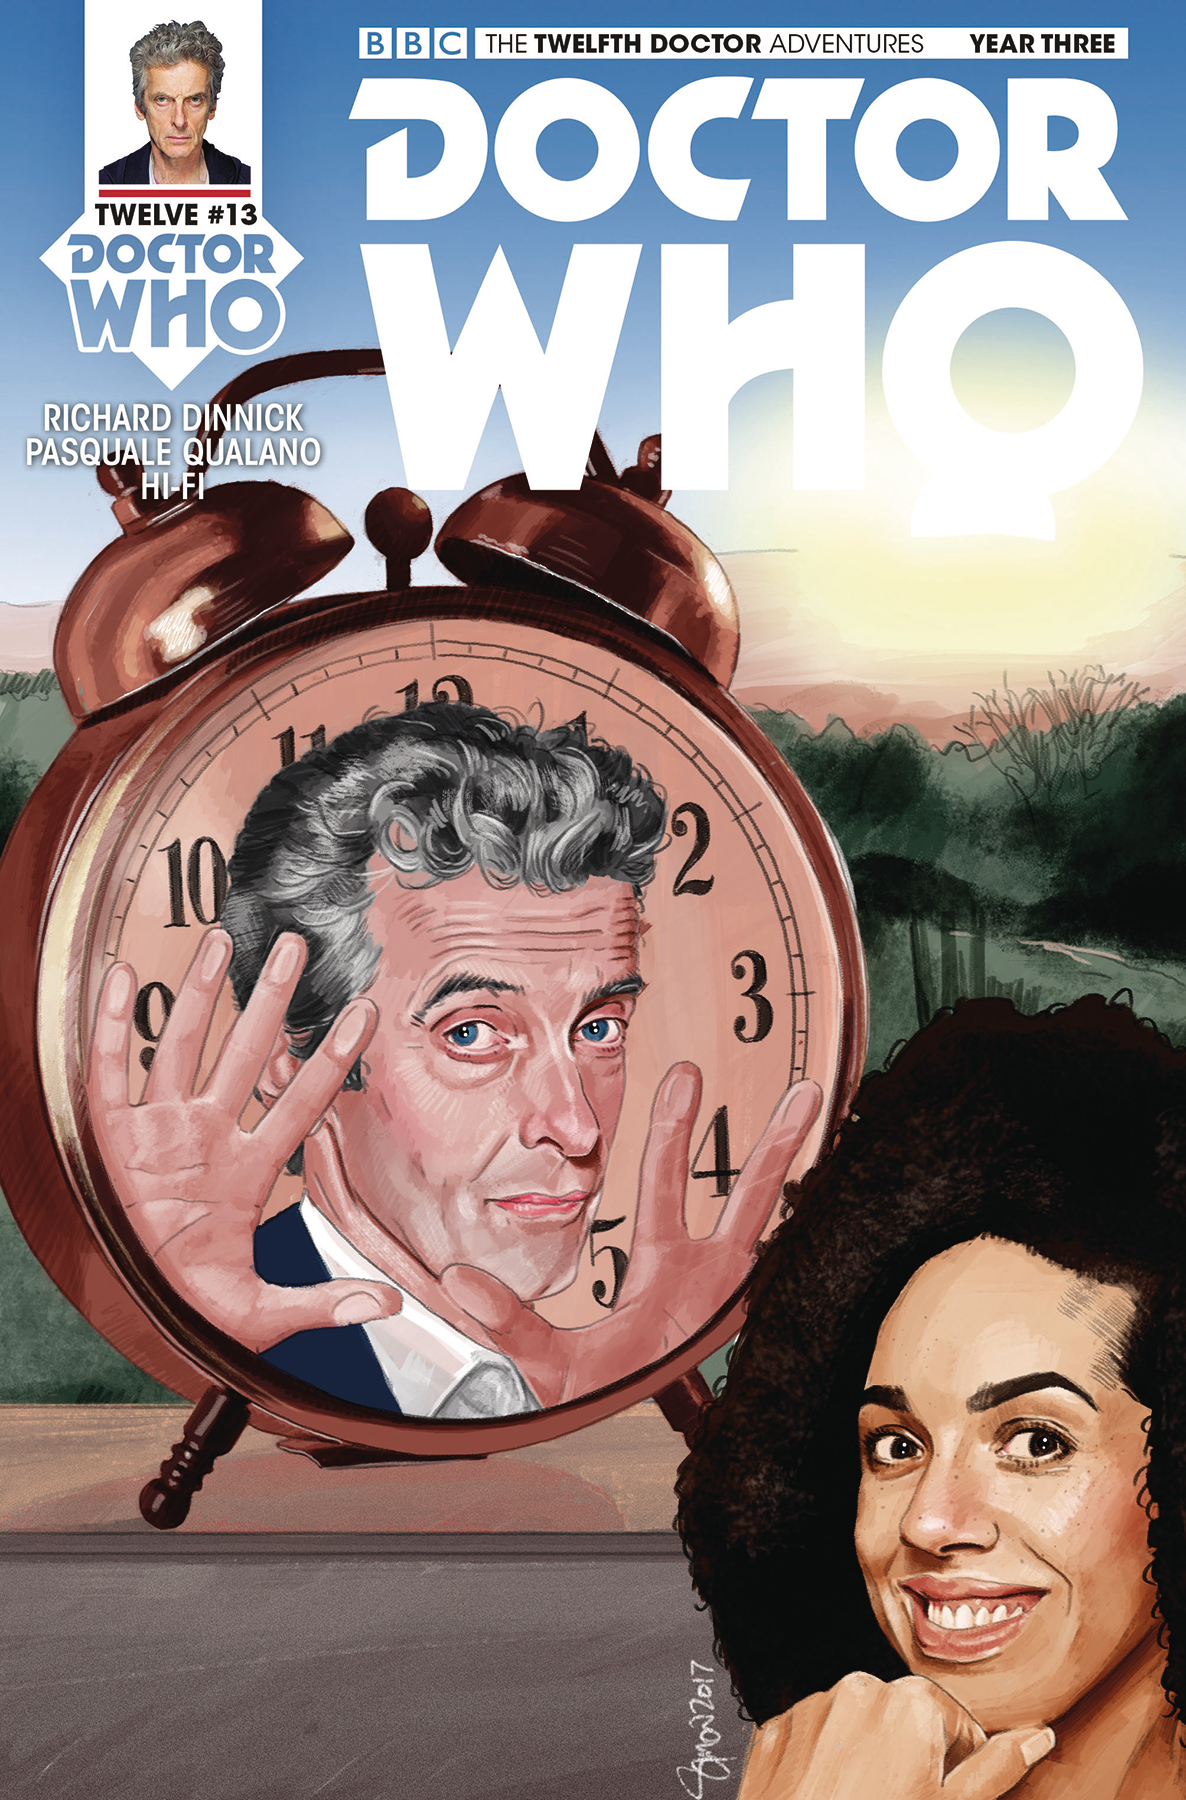 DOCTOR WHO 12TH YEAR THREE #13 CVR C MYERS